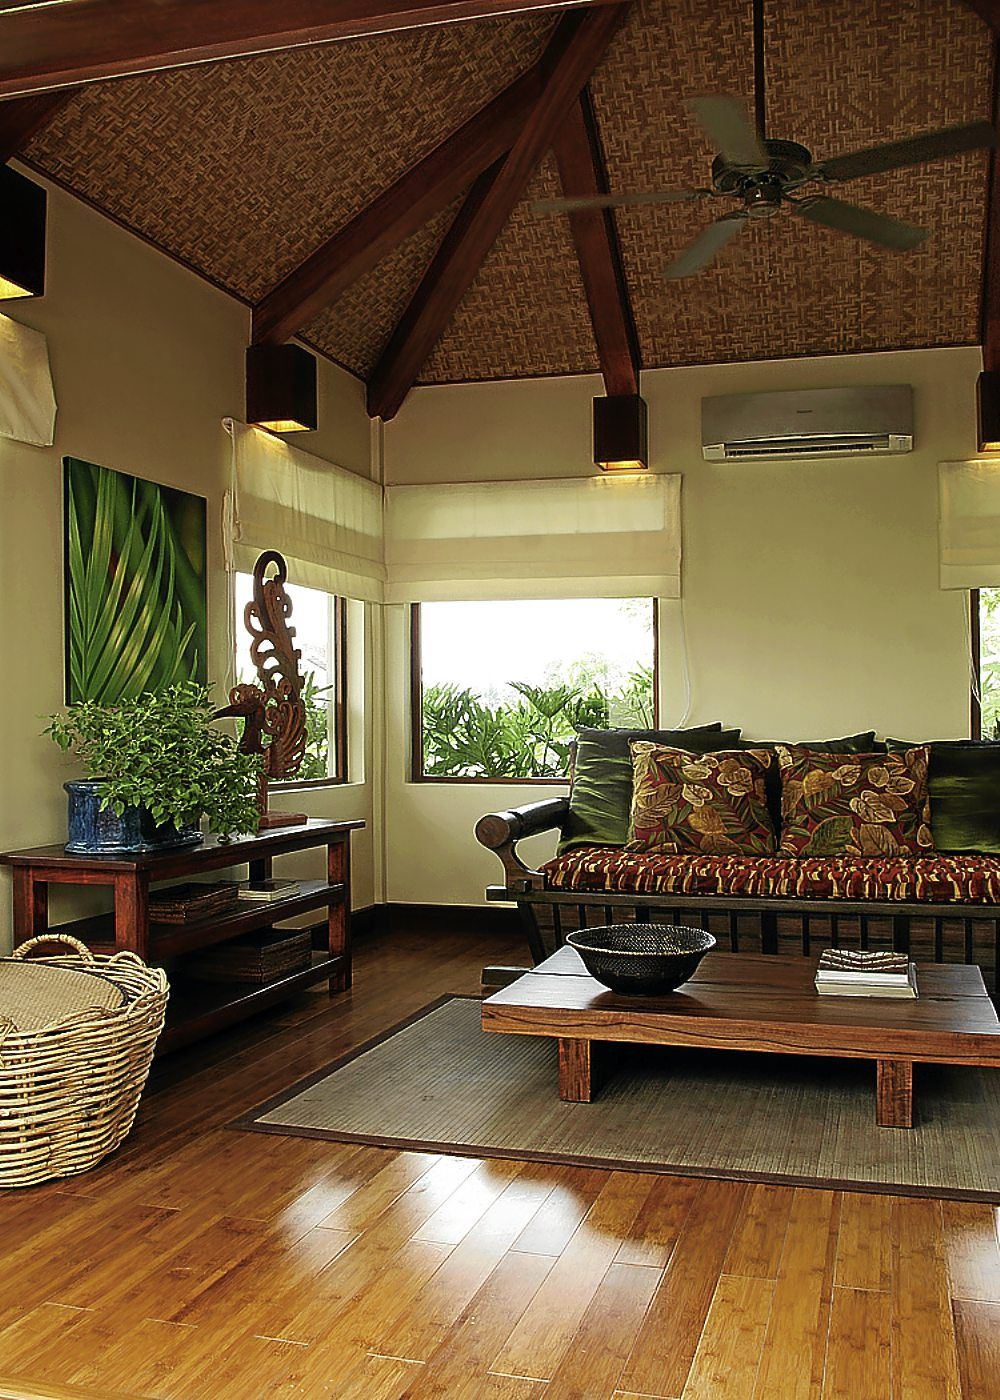 Modern filipino nipa hut house interior mañosa interiors modern take on the relaxed filipino home